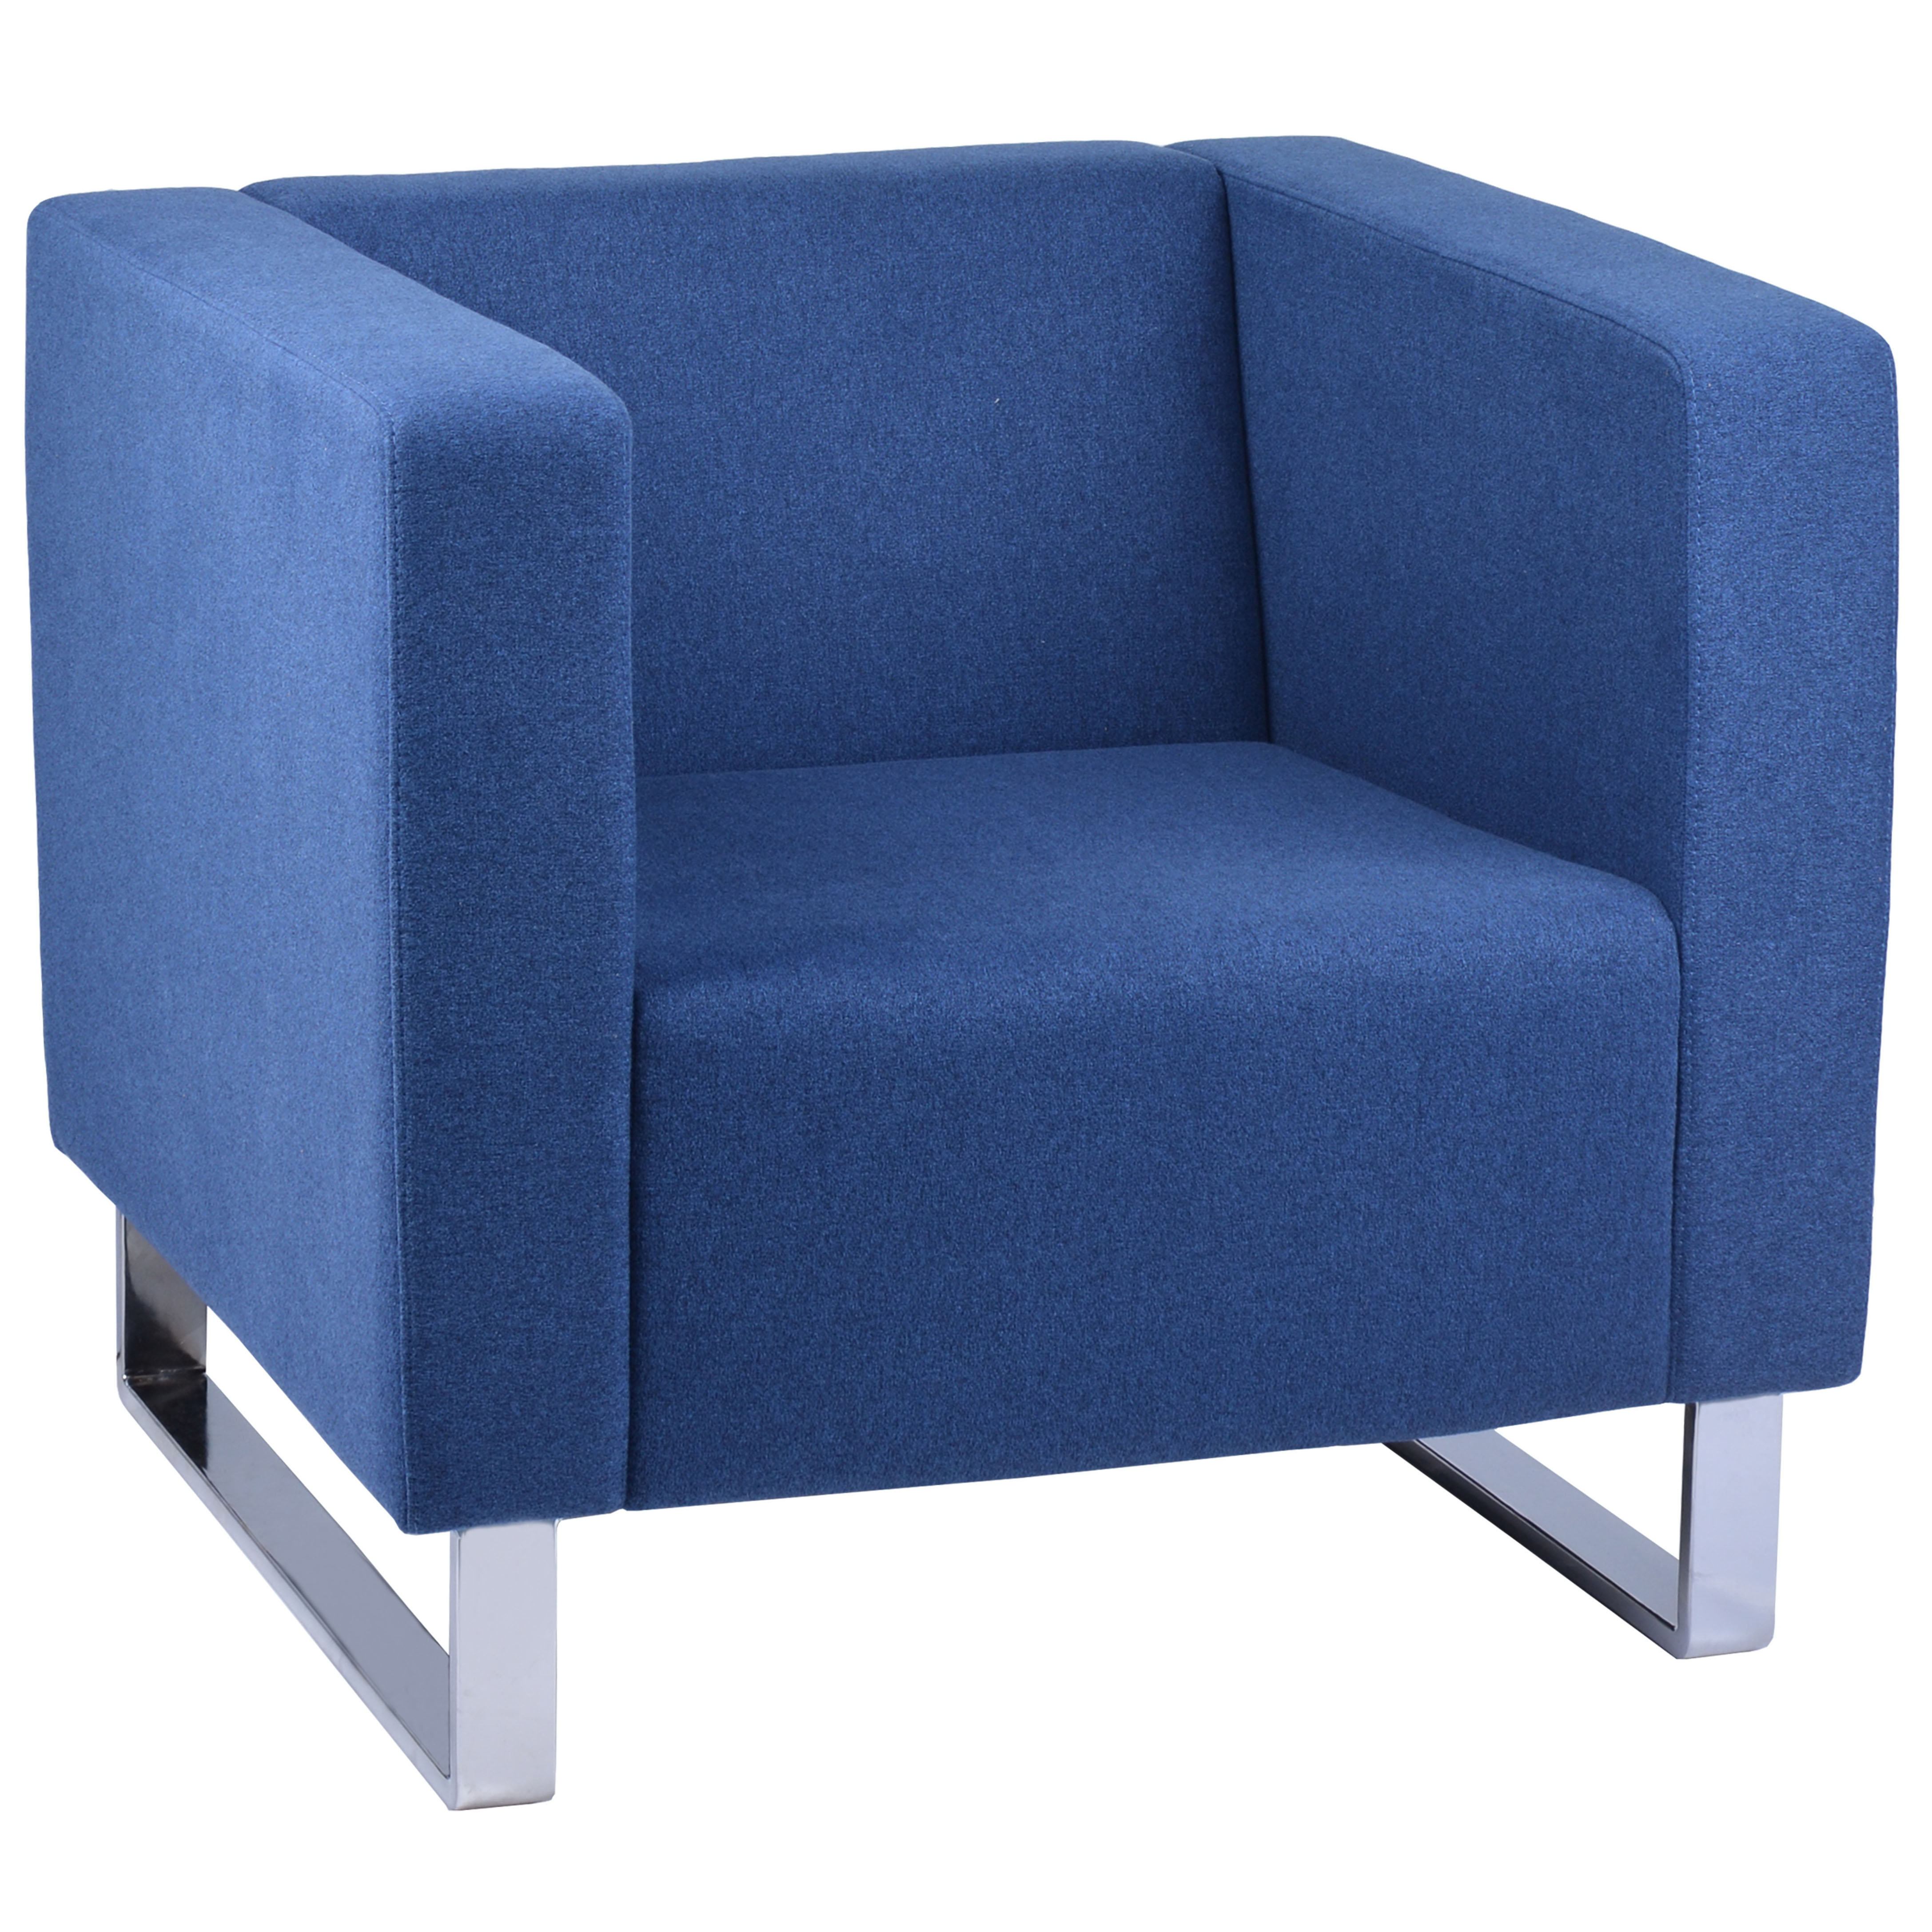 Excite 1 Seat Lounge